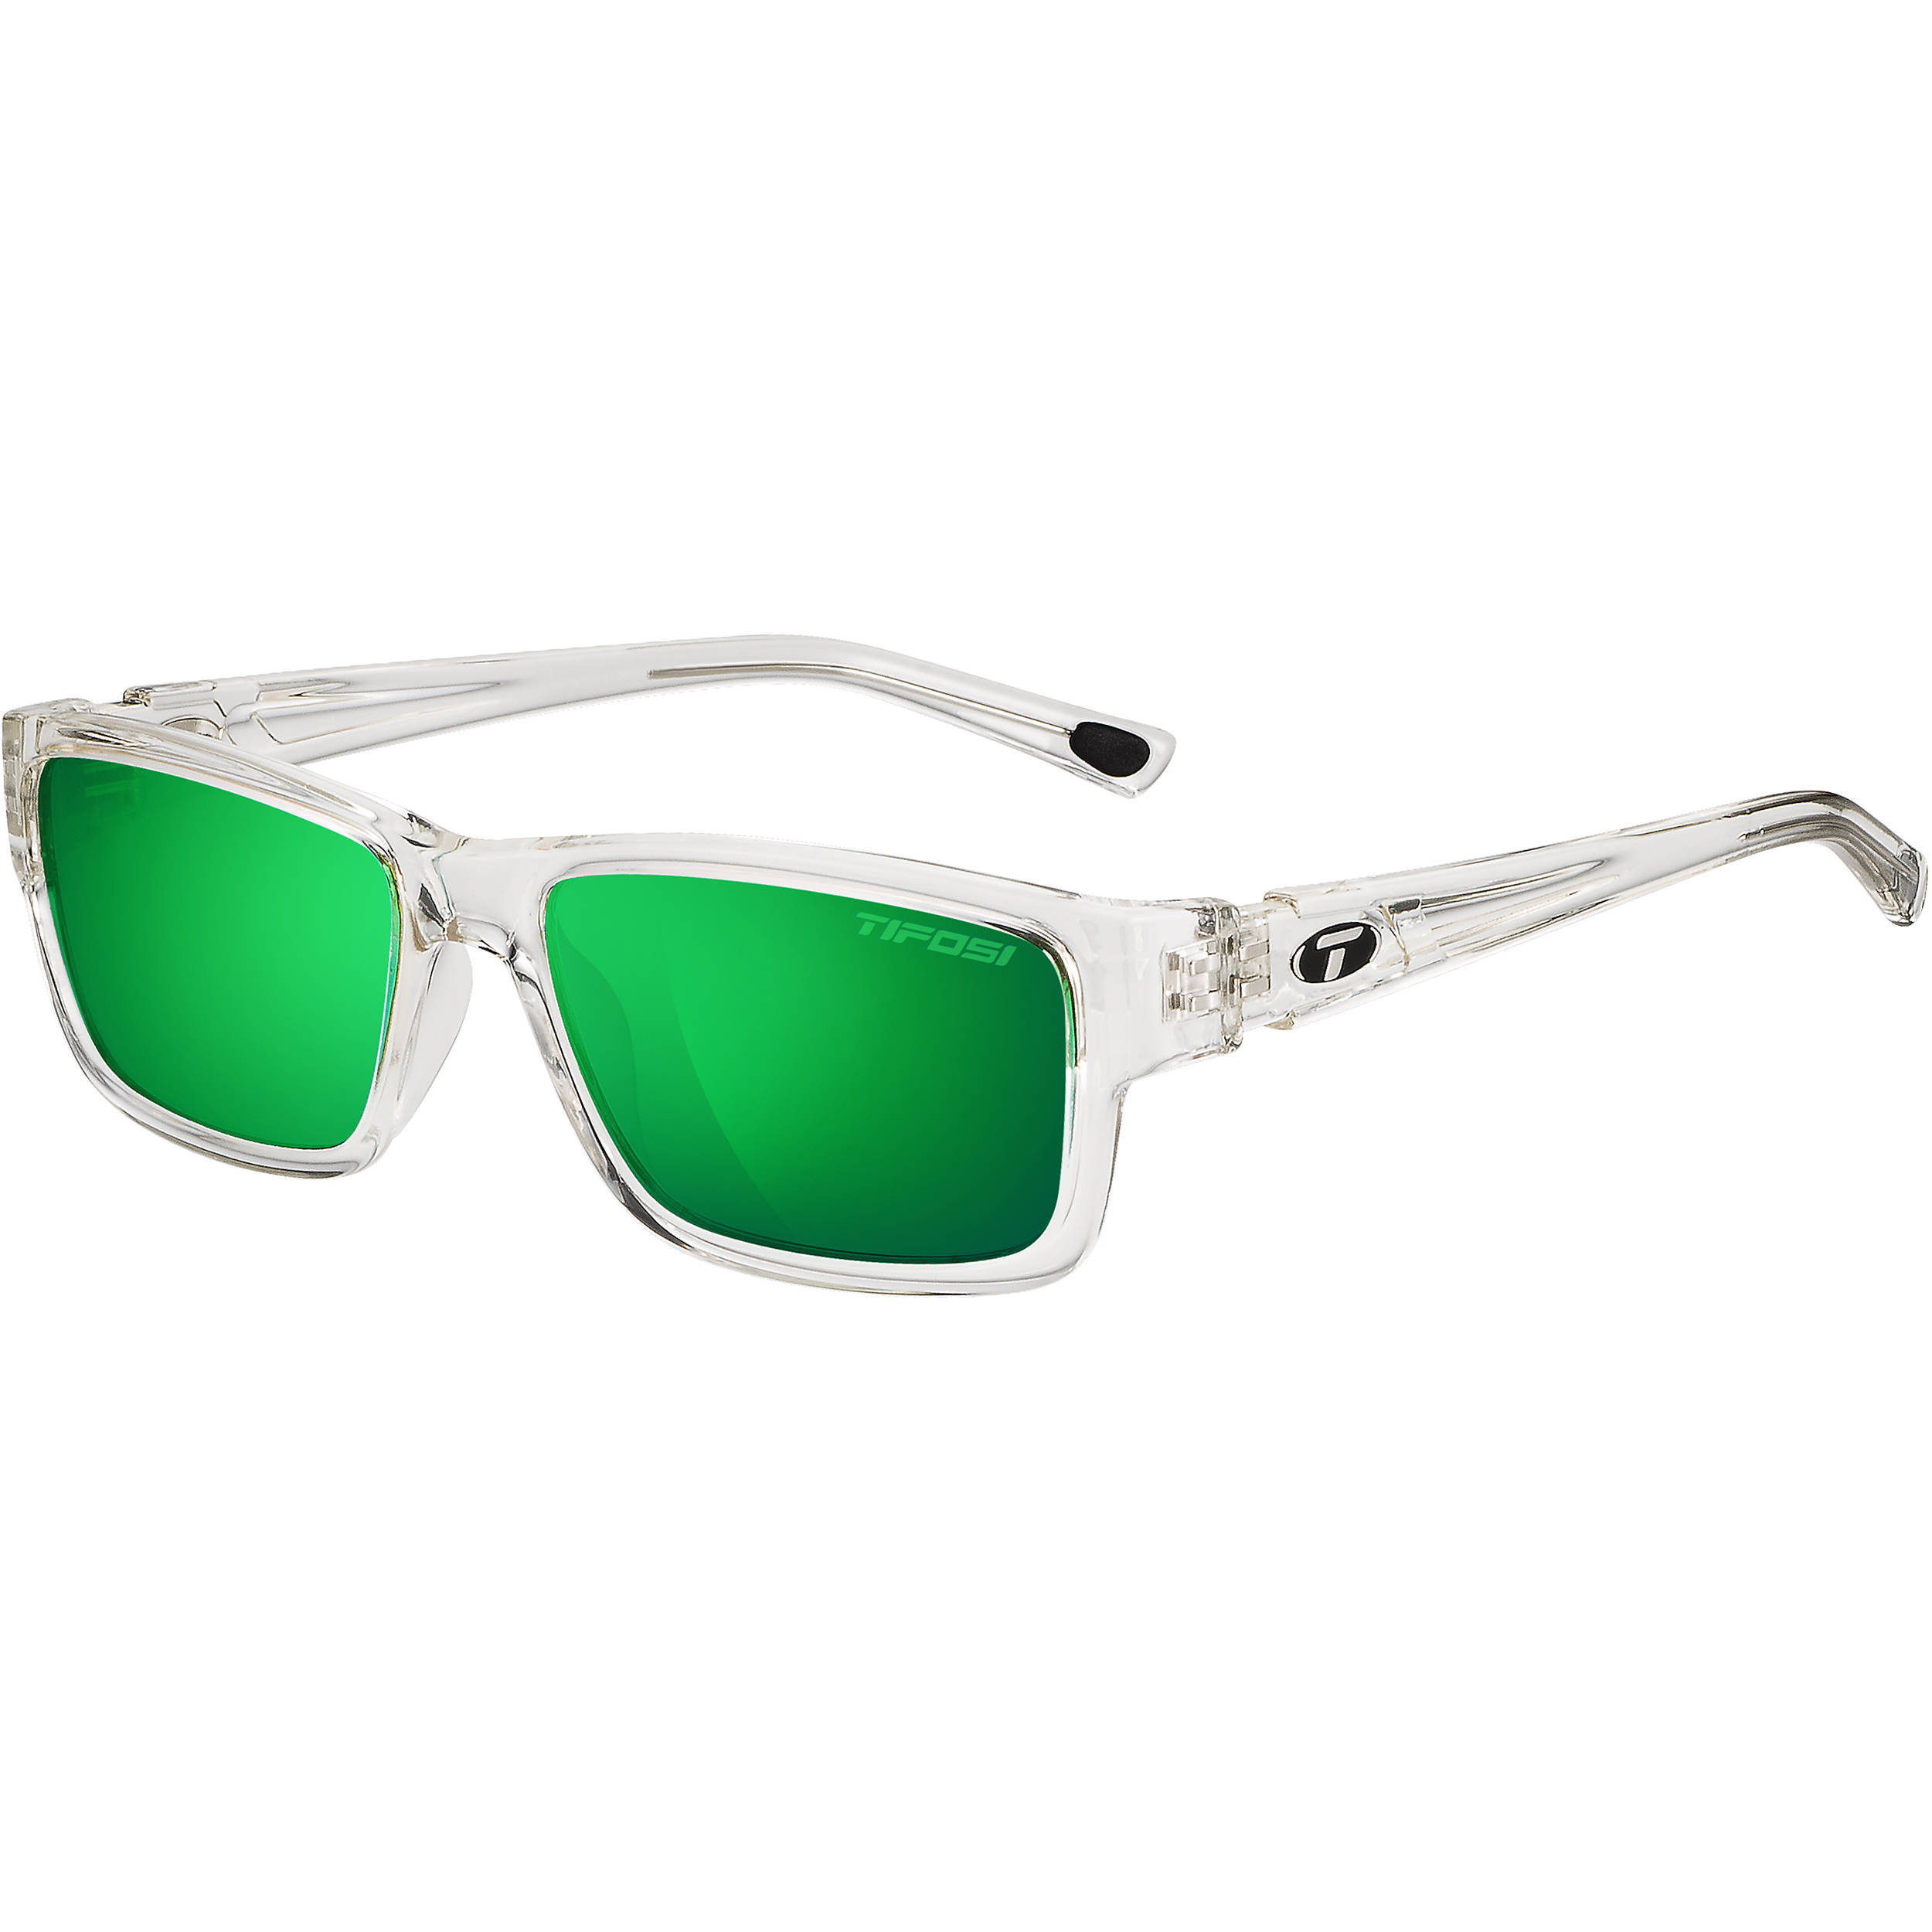 tifosi hagen sunglasses crystal clear frames polarized clarion green lenses